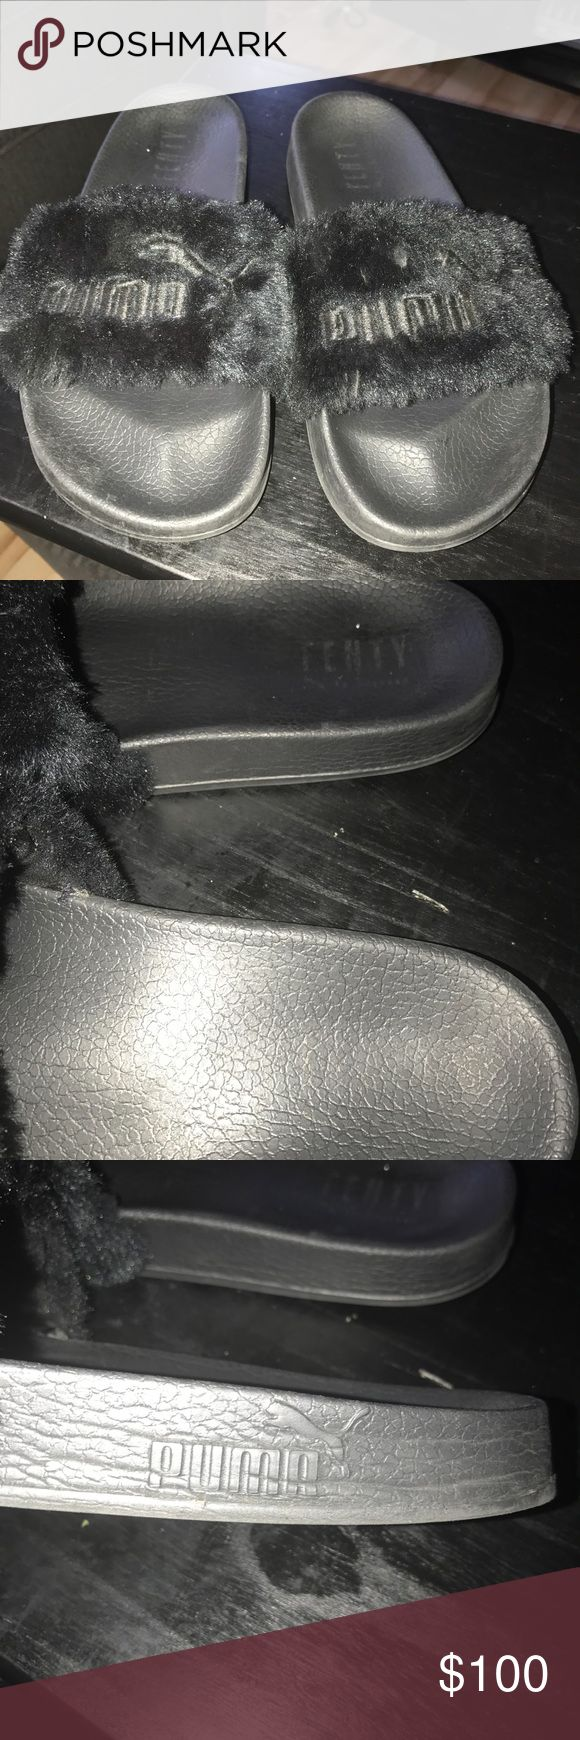 Rihanna Puma Fenty Fur Slides In excellent condition Sold out everywhere her hottest slide to date know your size in this brand her shoes usually run a size bi so these will fit from a 8.5-10 depending on your toe length Rihanna Shoes Sandals